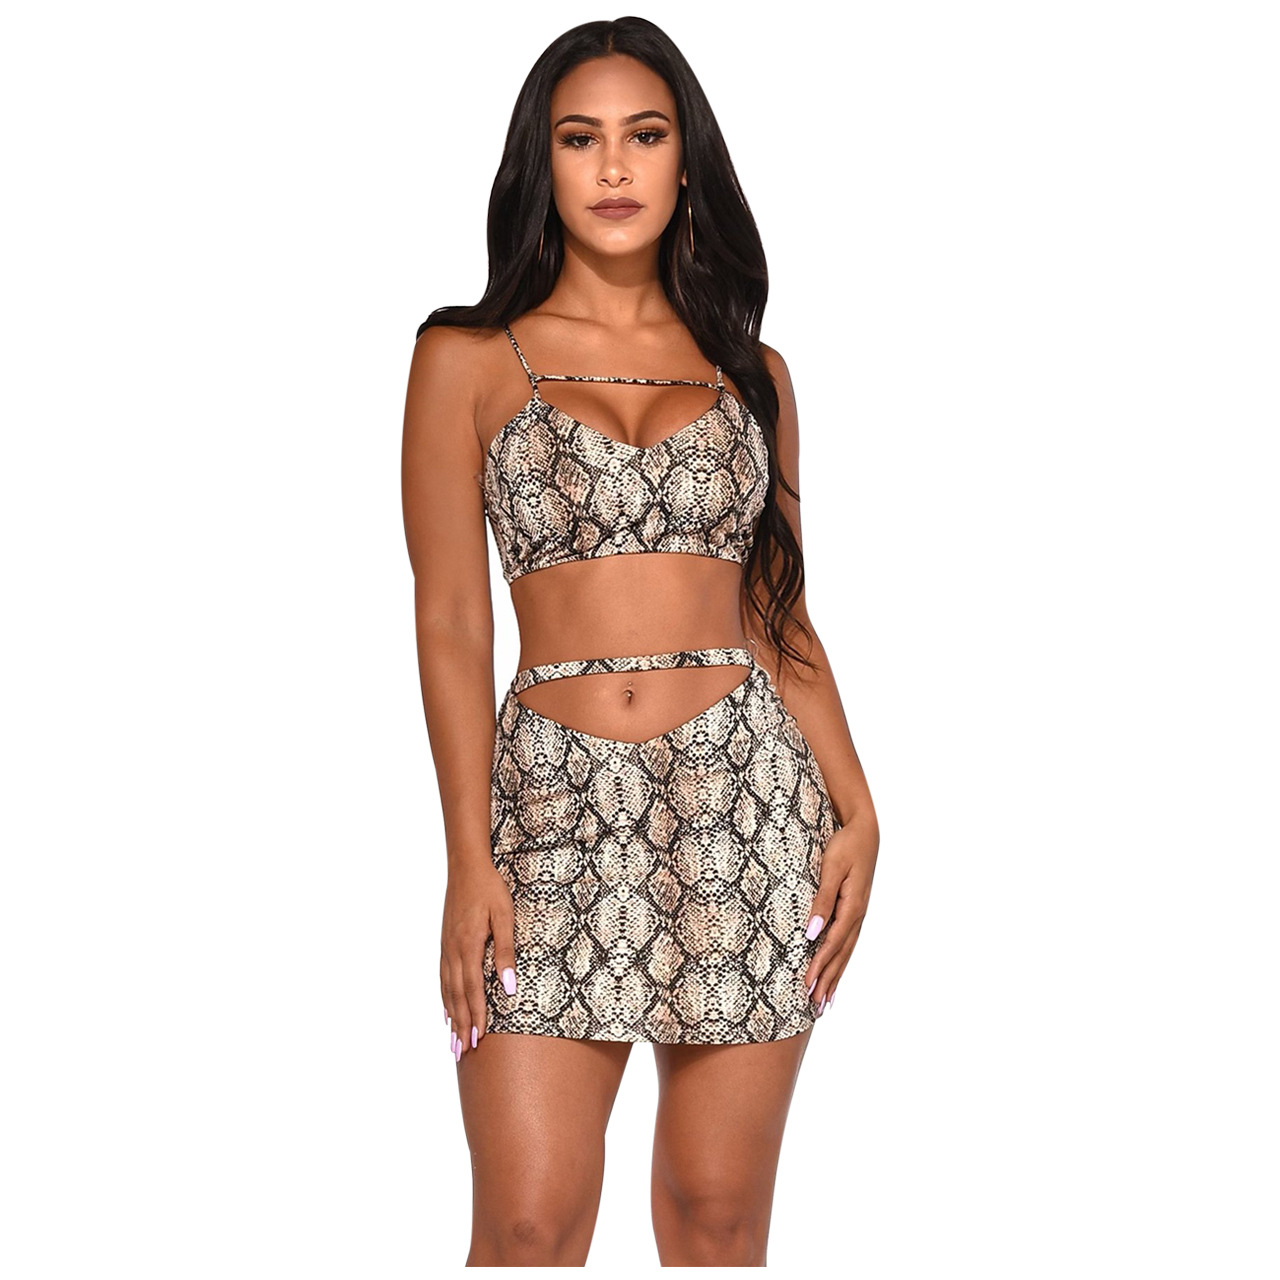 2a8db4b6 Snake Skin Leopard Print Two Piece Set Summer Clothes for Women Crop Top  Skirt Sexy Club Outfits Festival Matching Sets 2019 New